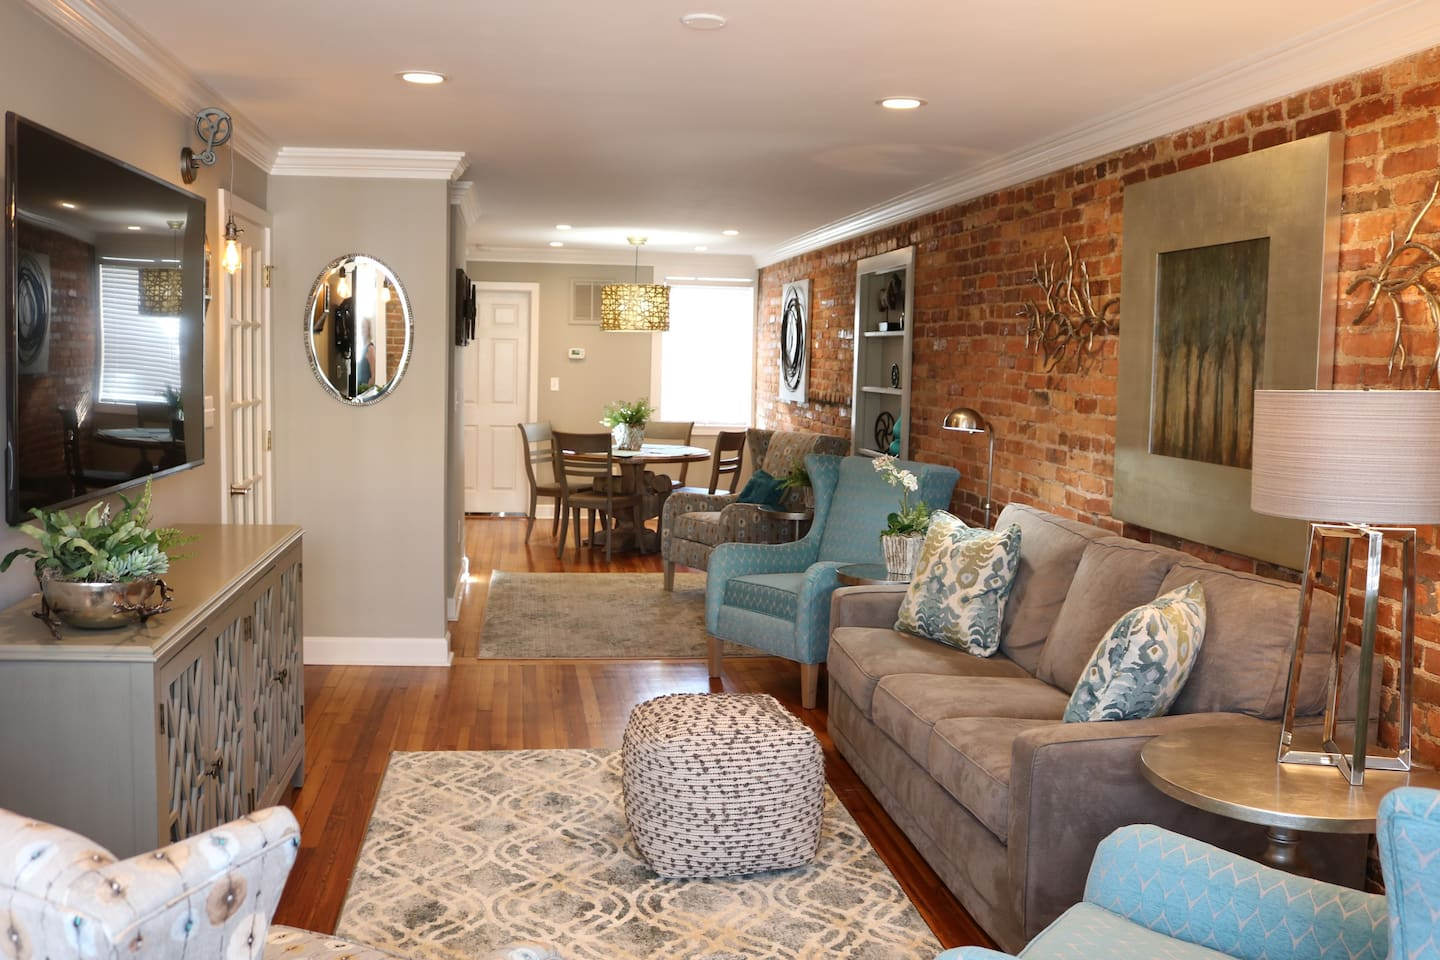 After adventuring downtown, you'll love to come back and relax in this open, bright and soothing space.